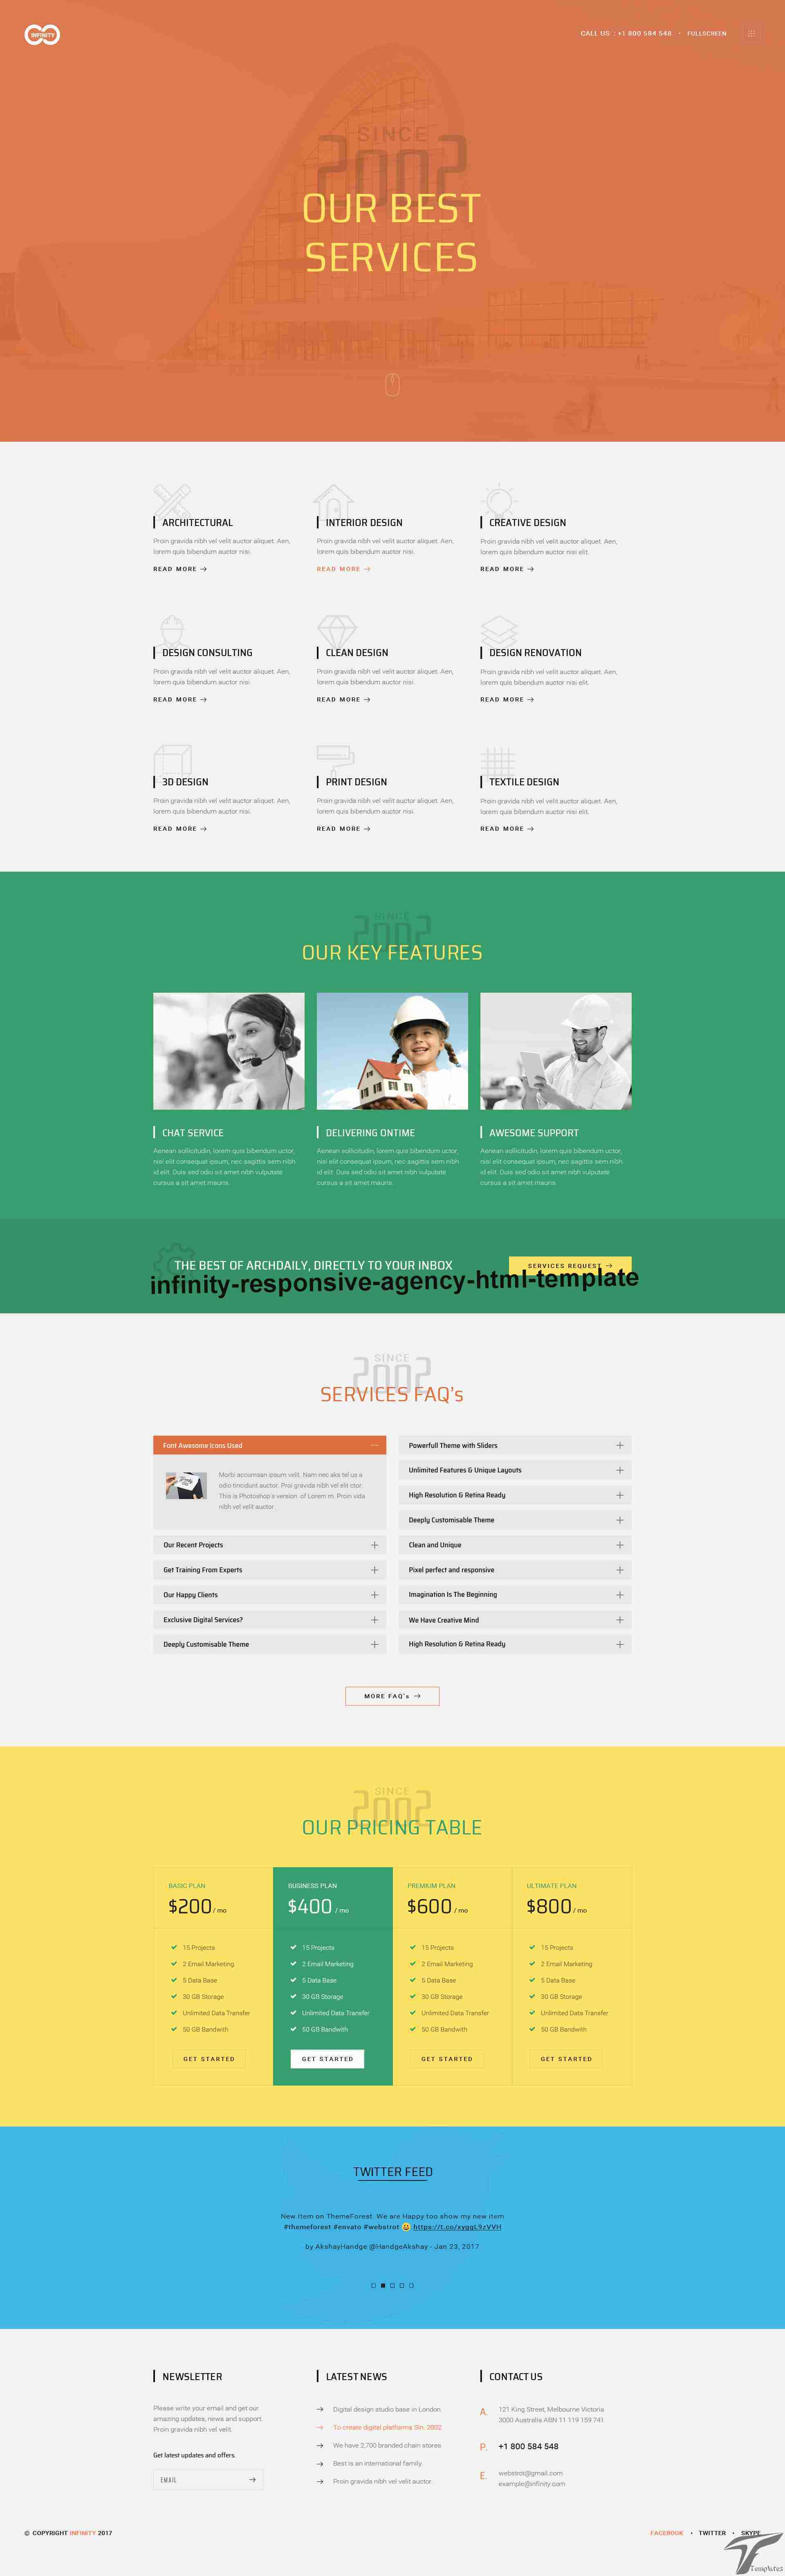 https://images.besthemes.com/images/h1_infinity-responsive-agency-html-template4-_-250603589/Theme_Preview/03_Services.jpg